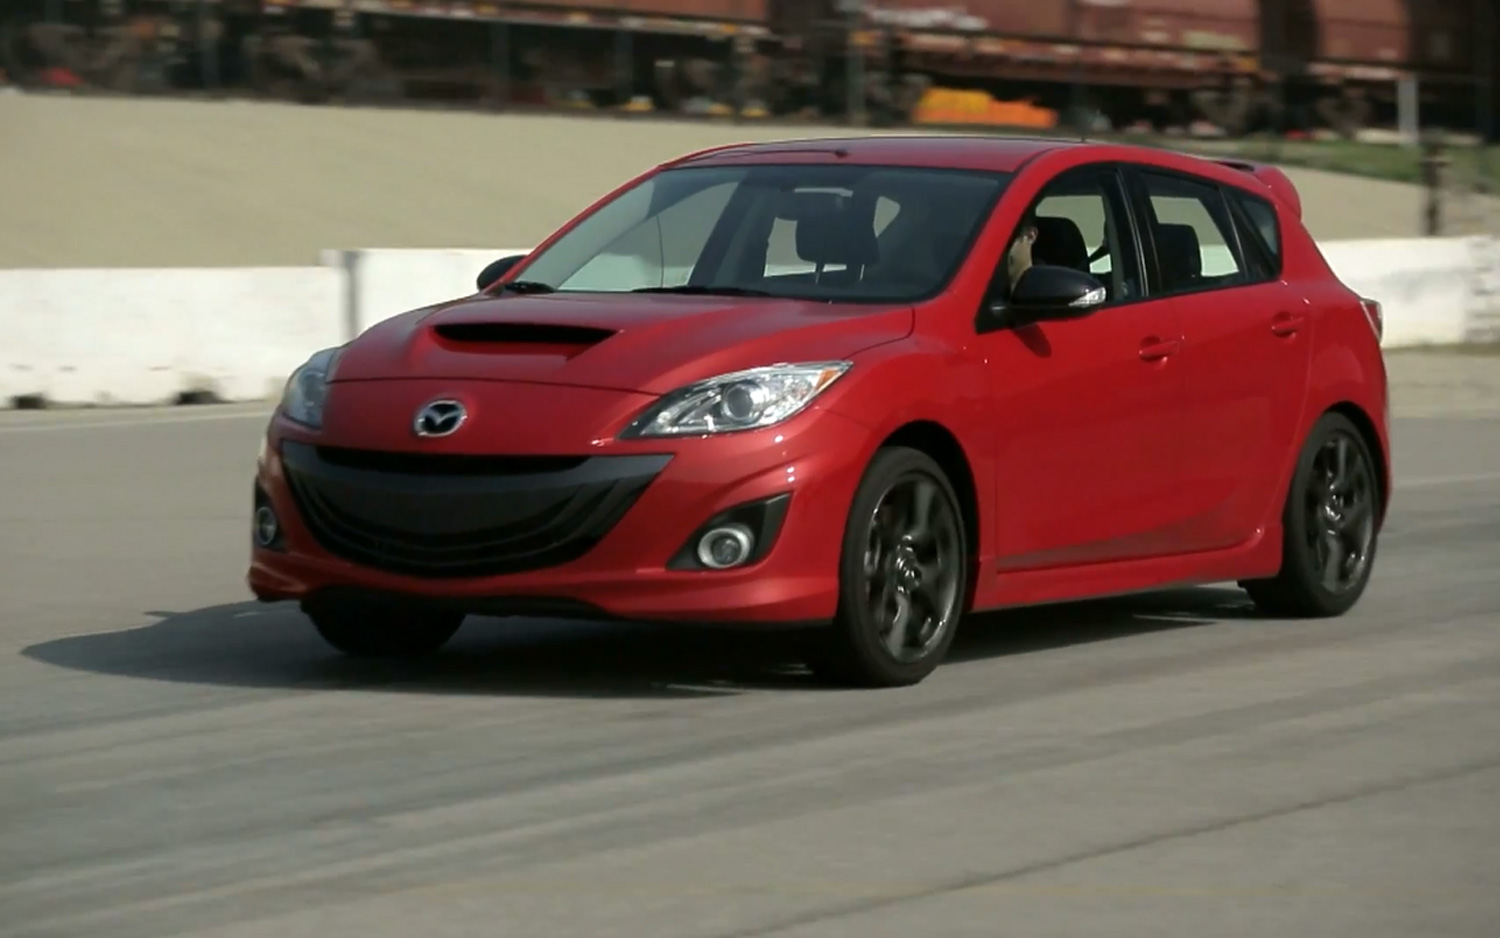 2013 Mazdaspeed3 A Front Drive Muscle Car New Ignition Video